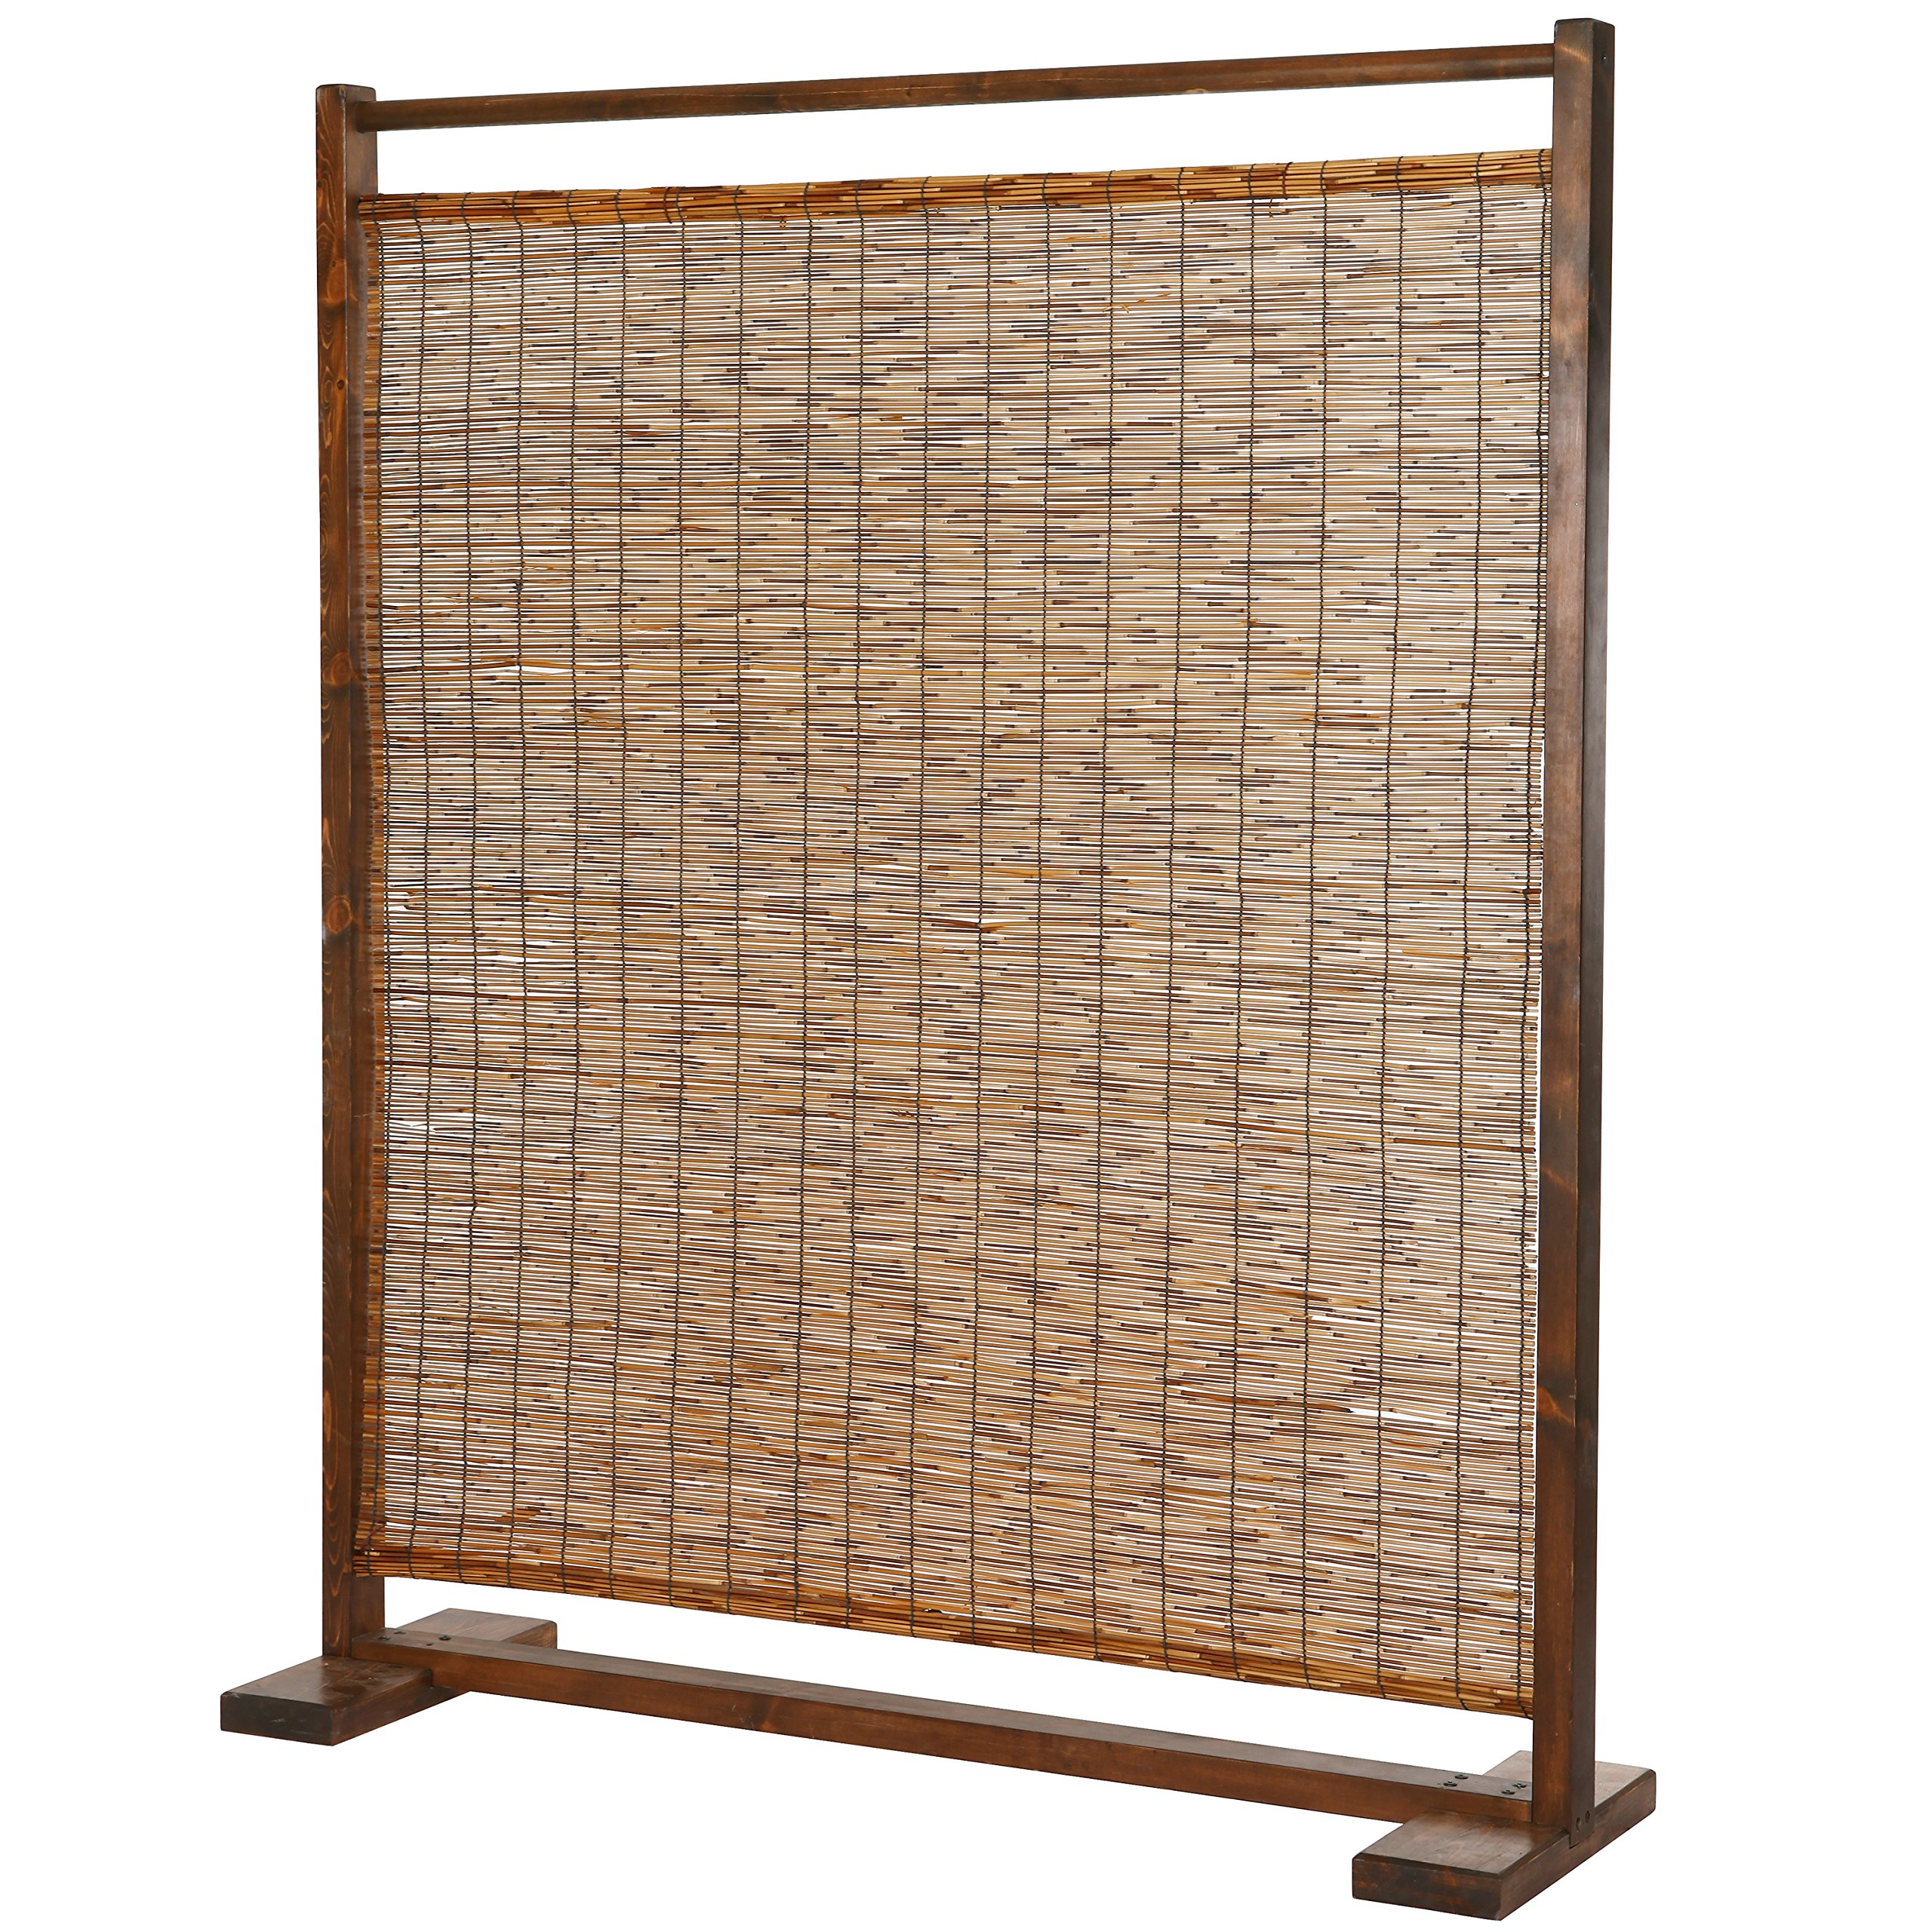 Freestanding Rustic Style Wood & Reed Single Panel Room Divider, Brown